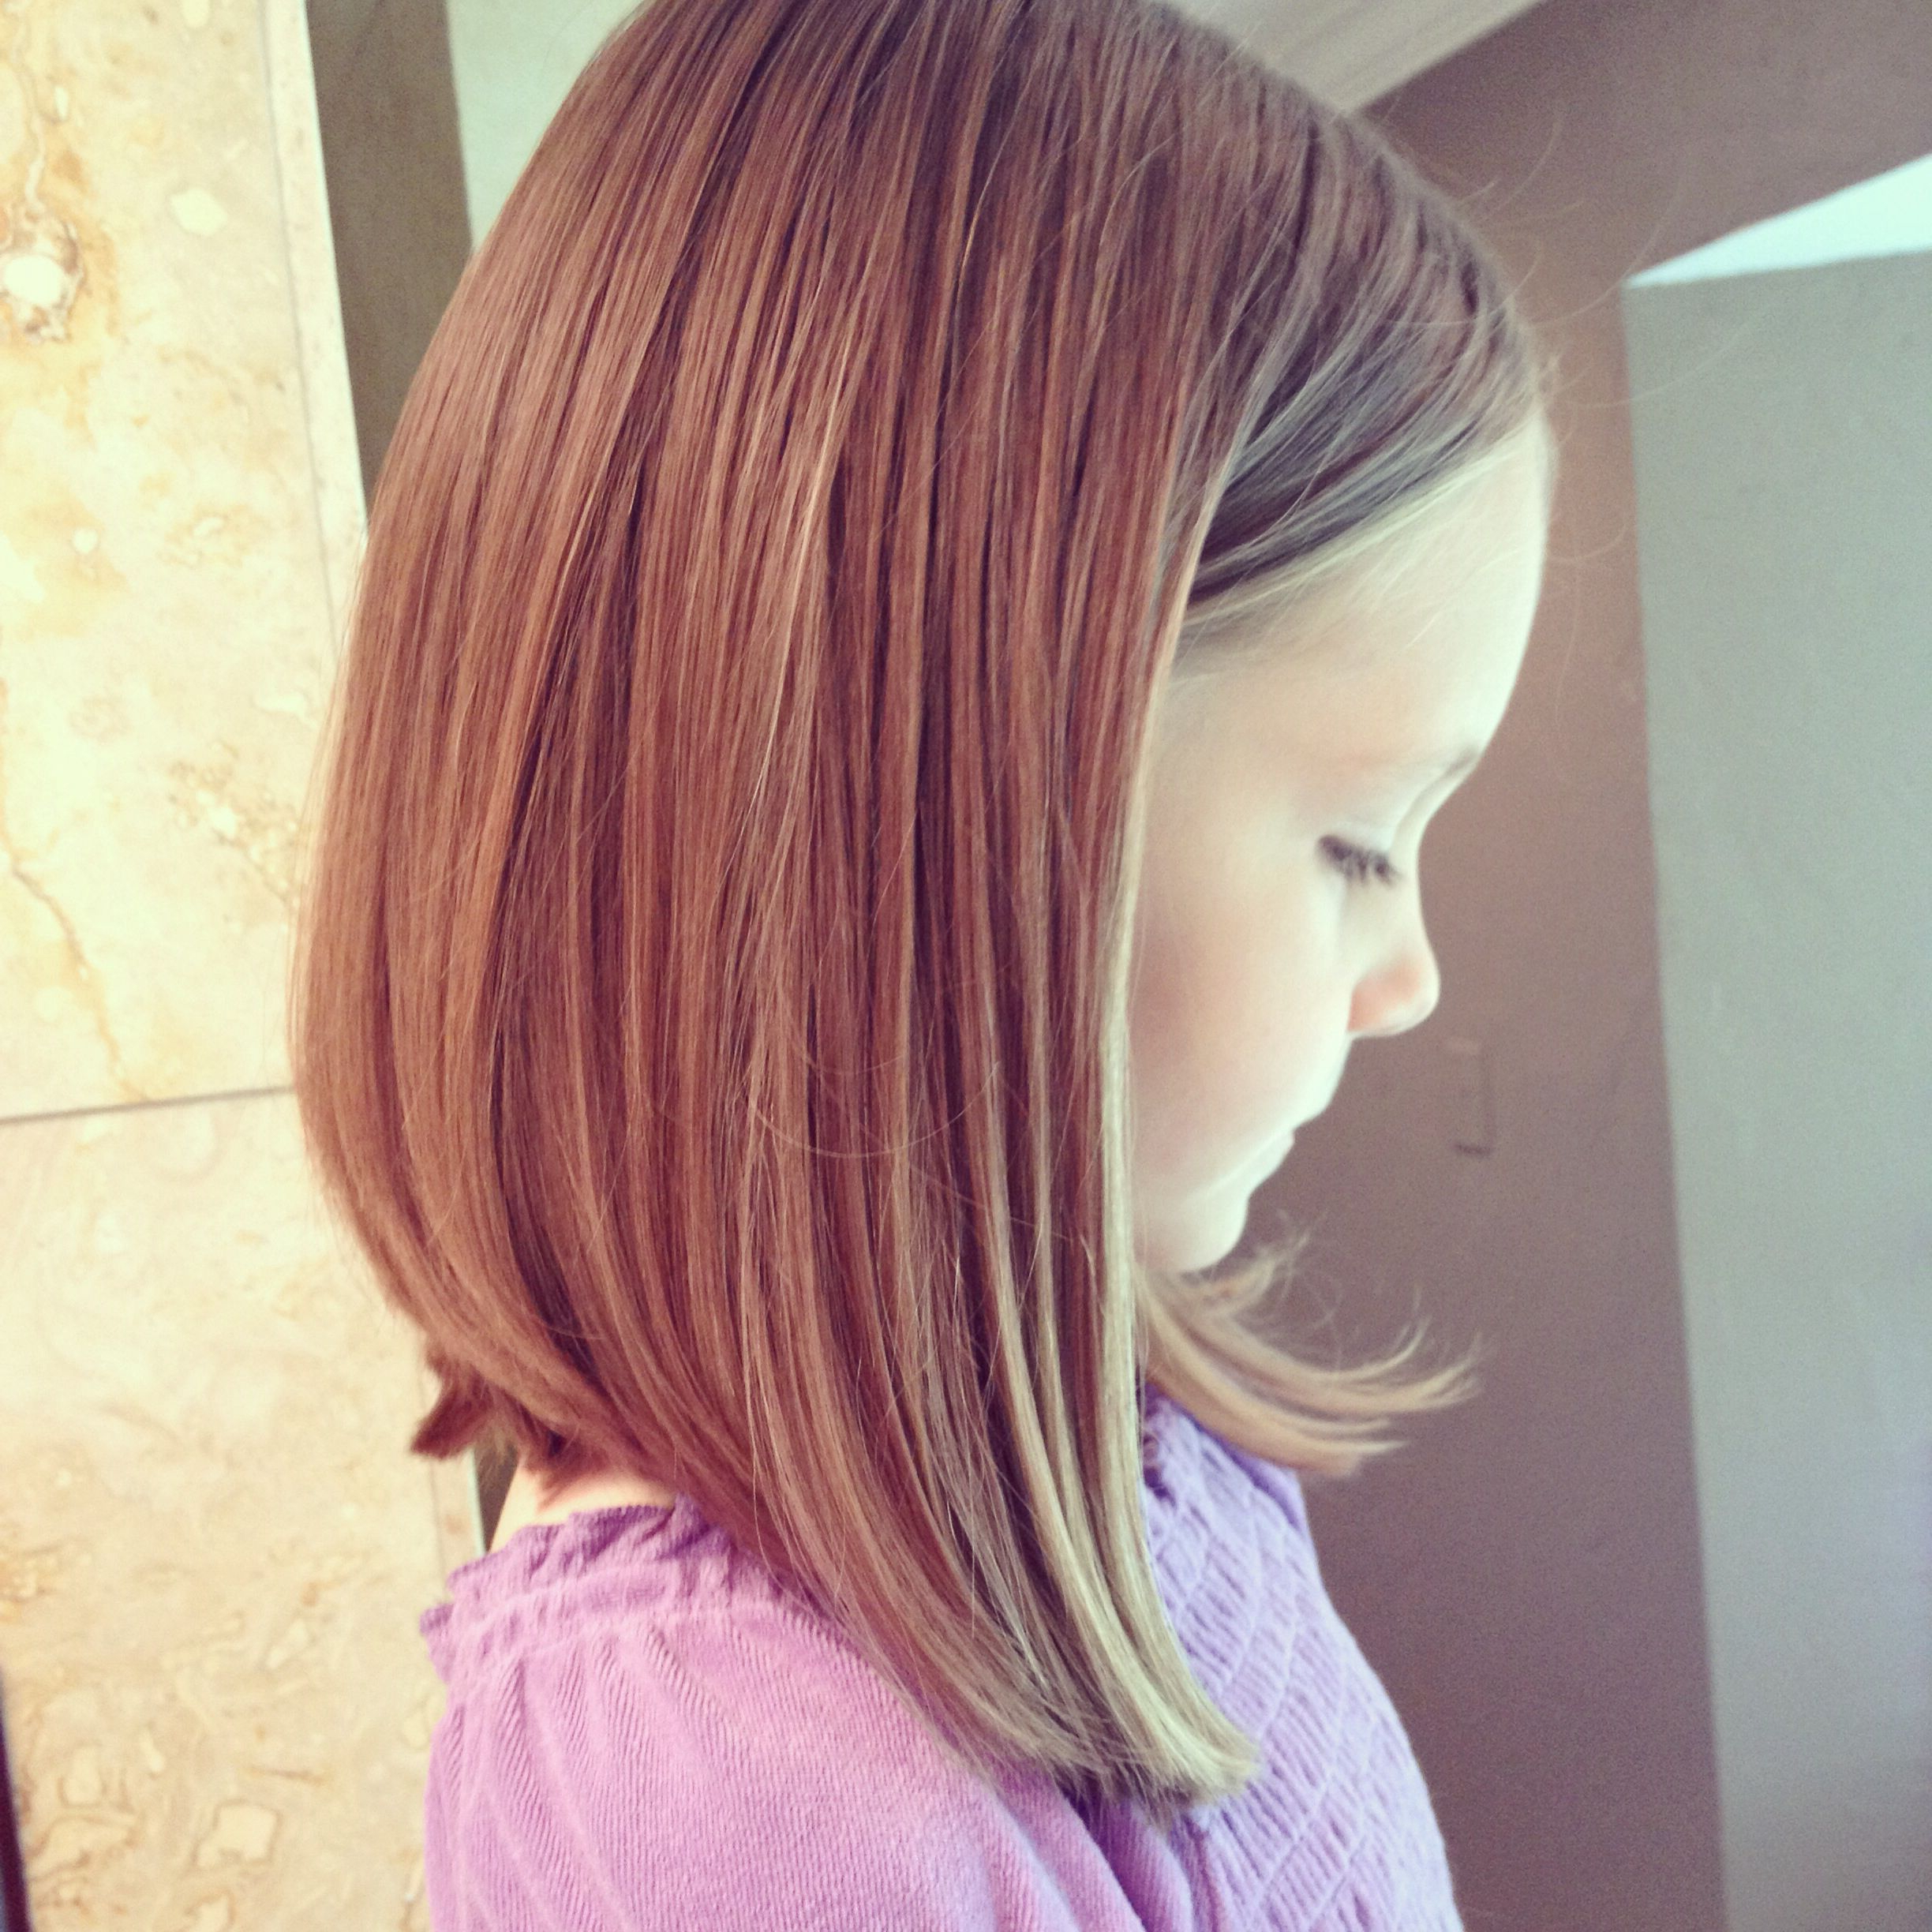 9 Best And Cute Bob Haircuts For Kids | Kids Haircuts | Pinterest Inside Young Girl Short Hairstyles (View 5 of 25)